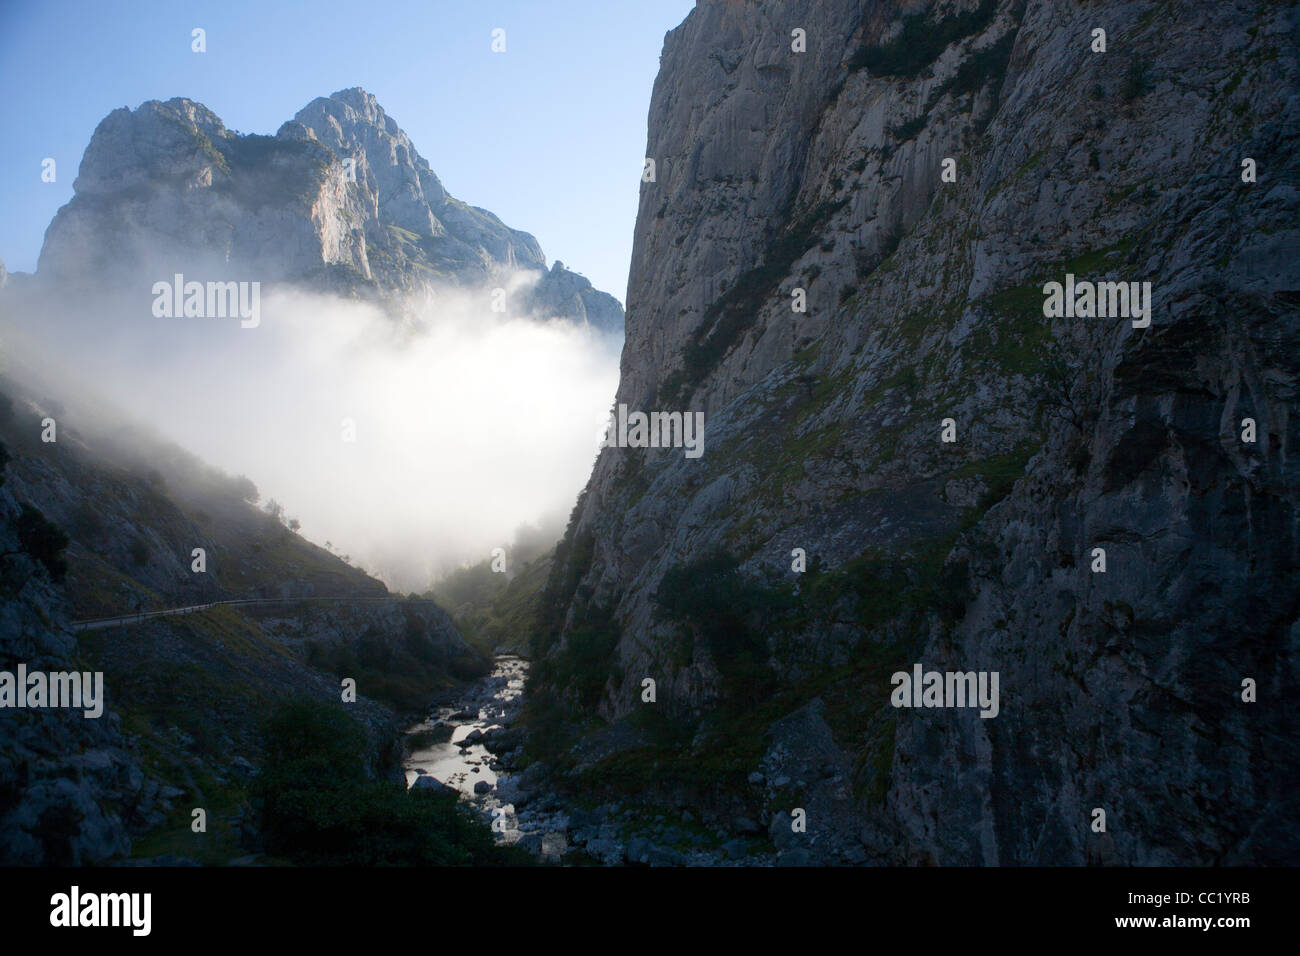 Mist at the entrance to the Garganta del Cares (Cares Gorge) - Stock Image